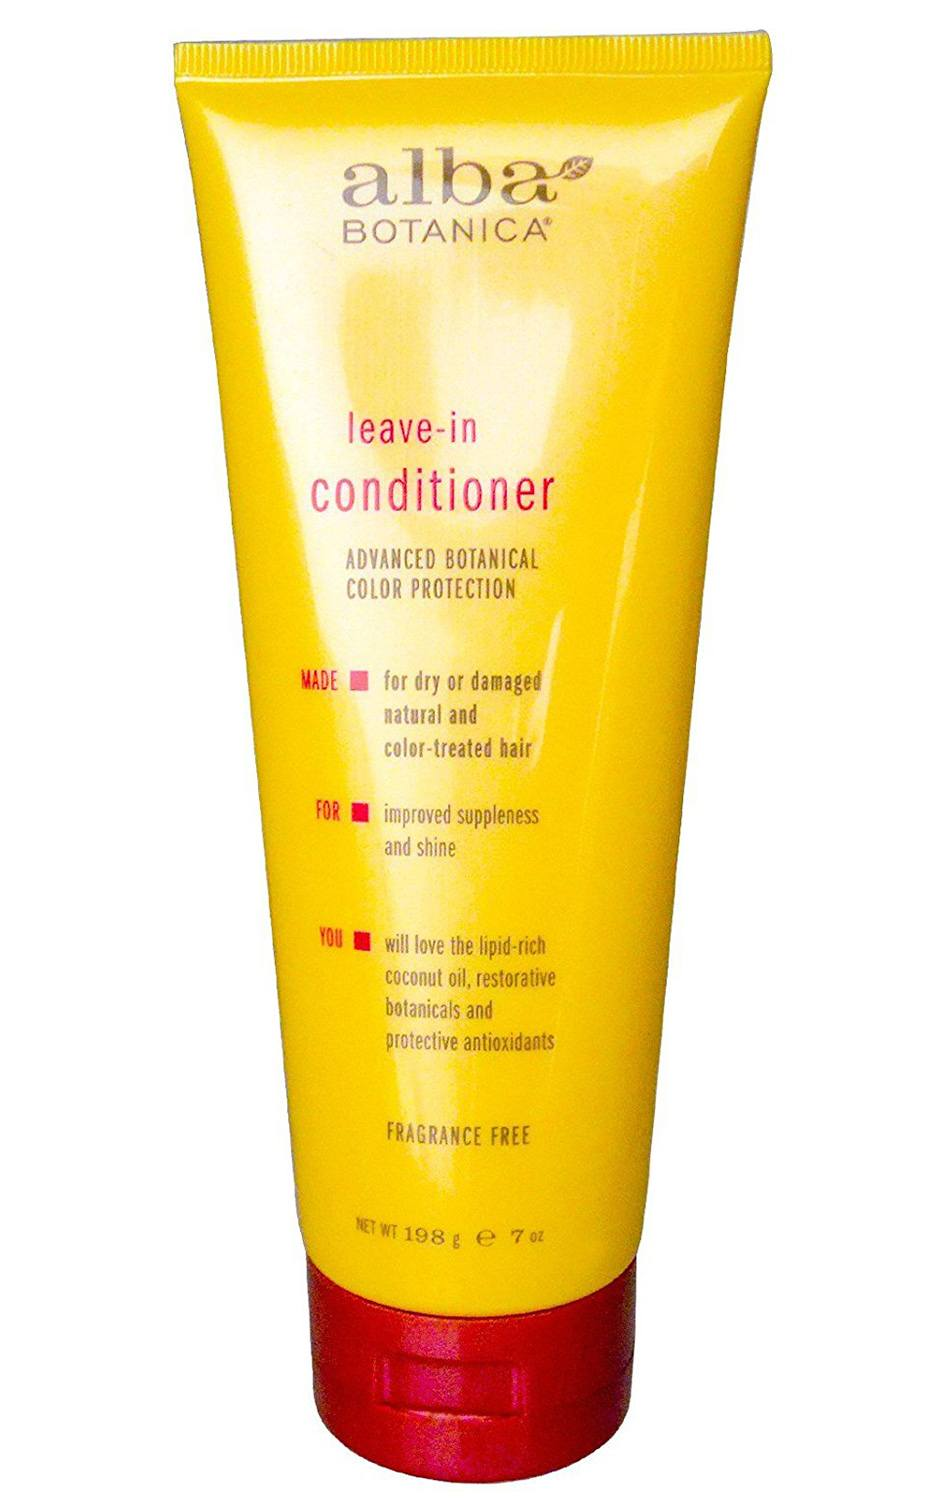 Alba Botanica Leave-in Conditioner Fragrance Free